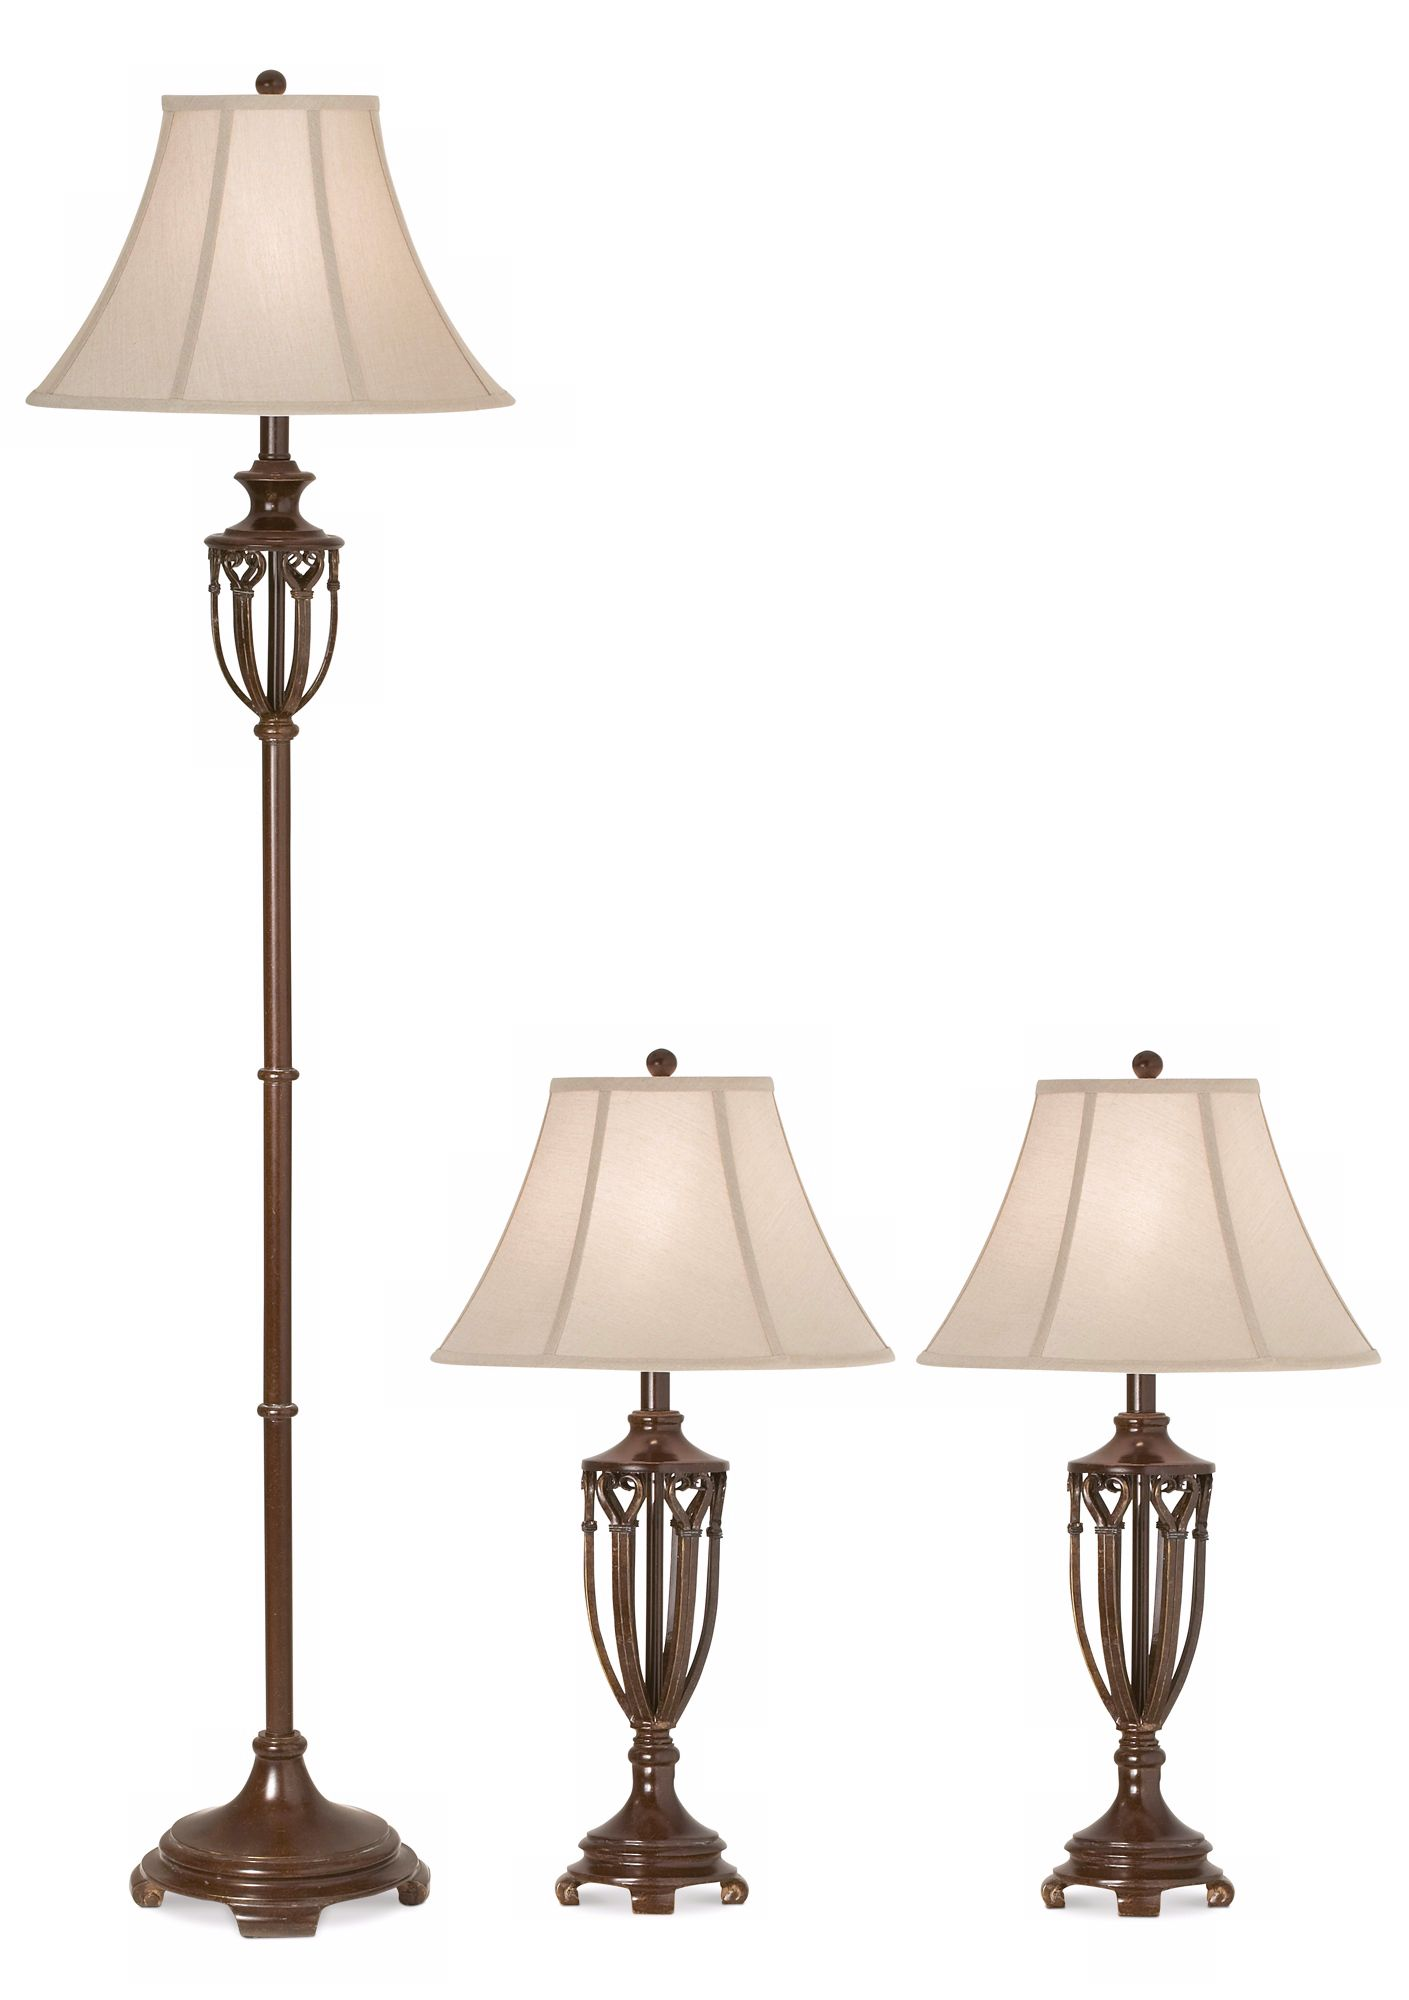 Kathy Ireland Estate Collection Table and Floor L& Set  sc 1 st  L&s Plus & Kathy Ireland Estate Collection Table and Floor Lamp Set - #P7677 ...